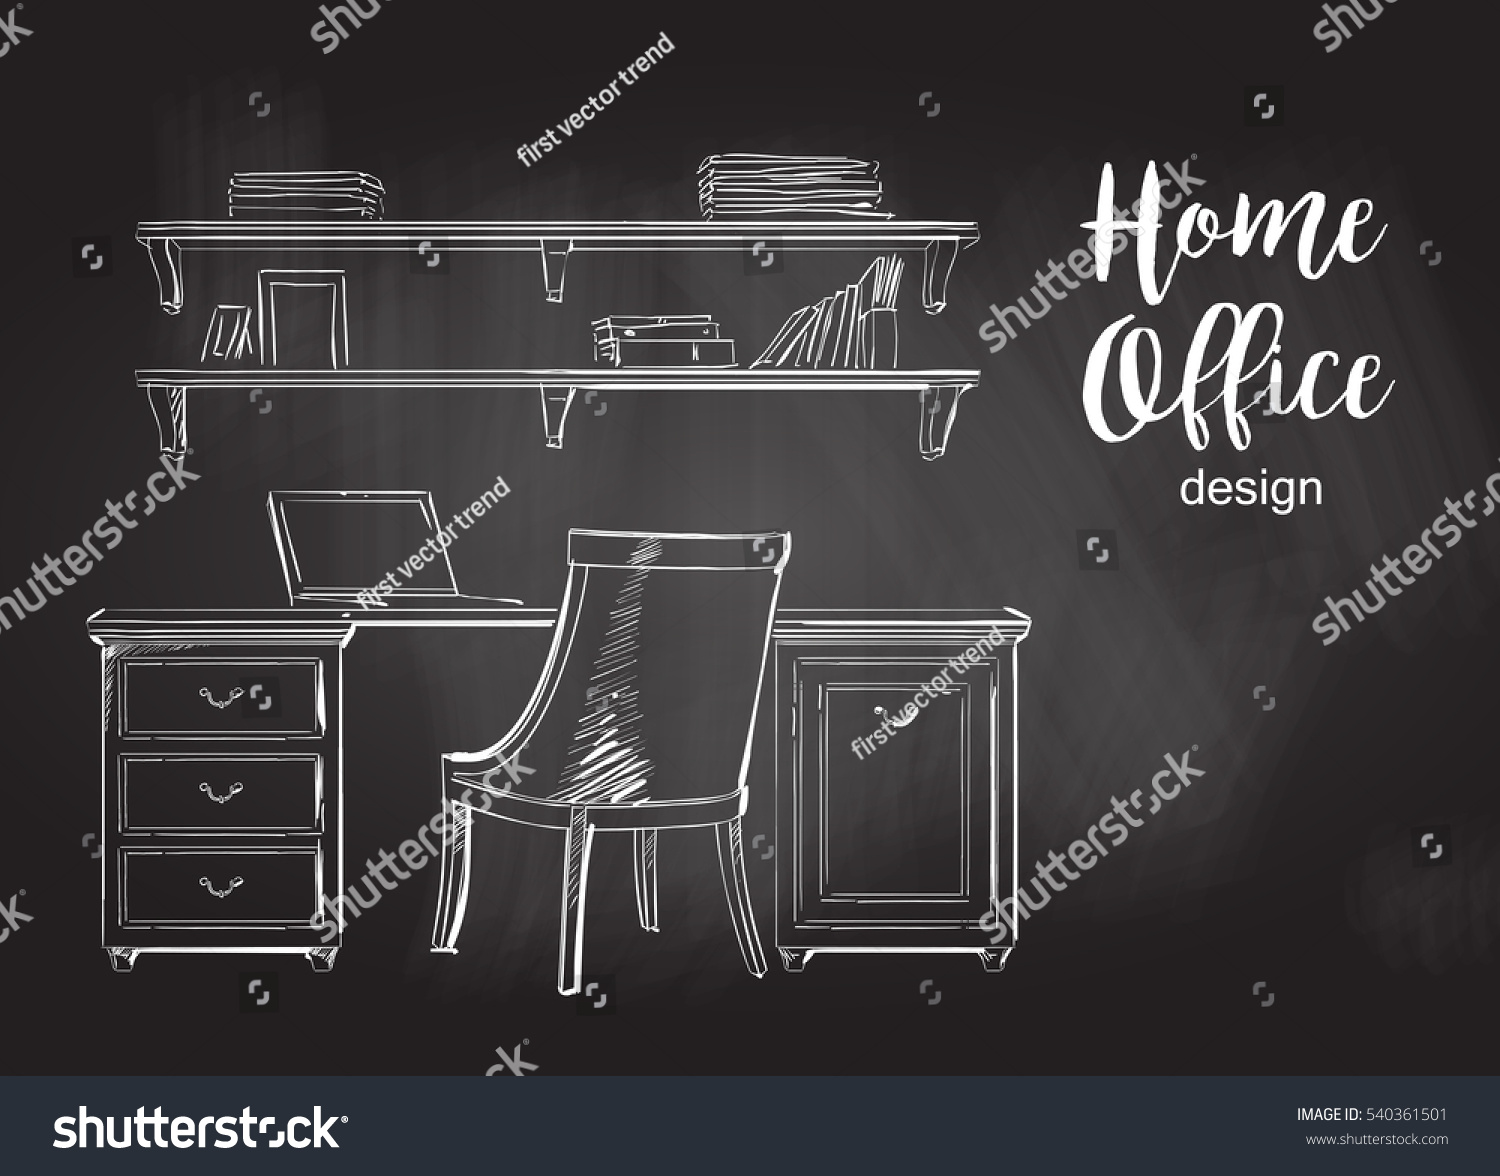 Interior wooden shelves free vector - Set Of Hand Drawn Classic Home Office Interior Work Table Wooden Shelf Chair Vector Sketch Chalkboard